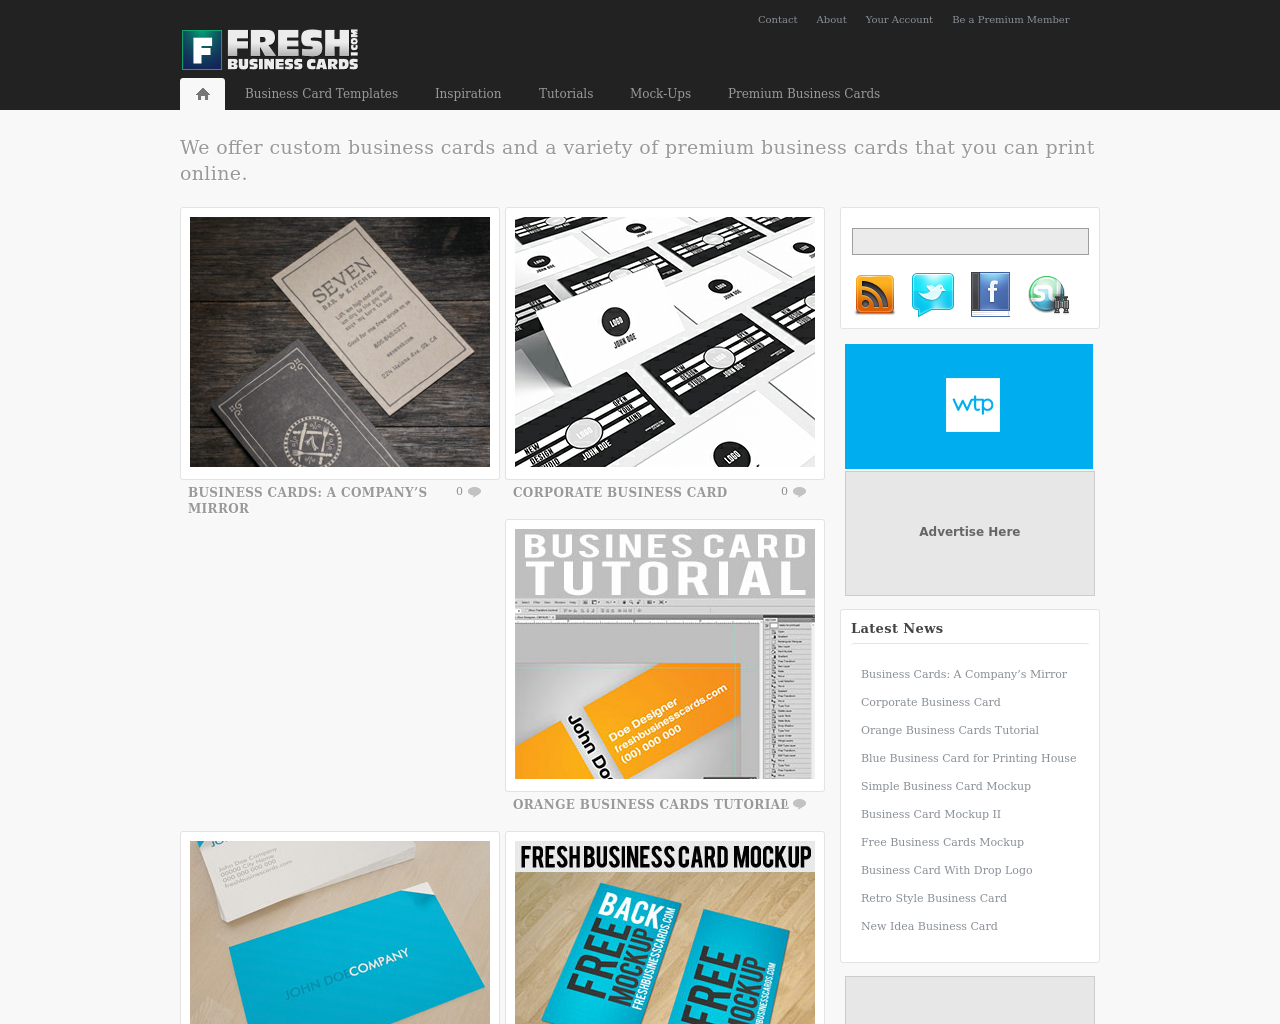 Fresh-Business-Cards-Advertising-Reviews-Pricing